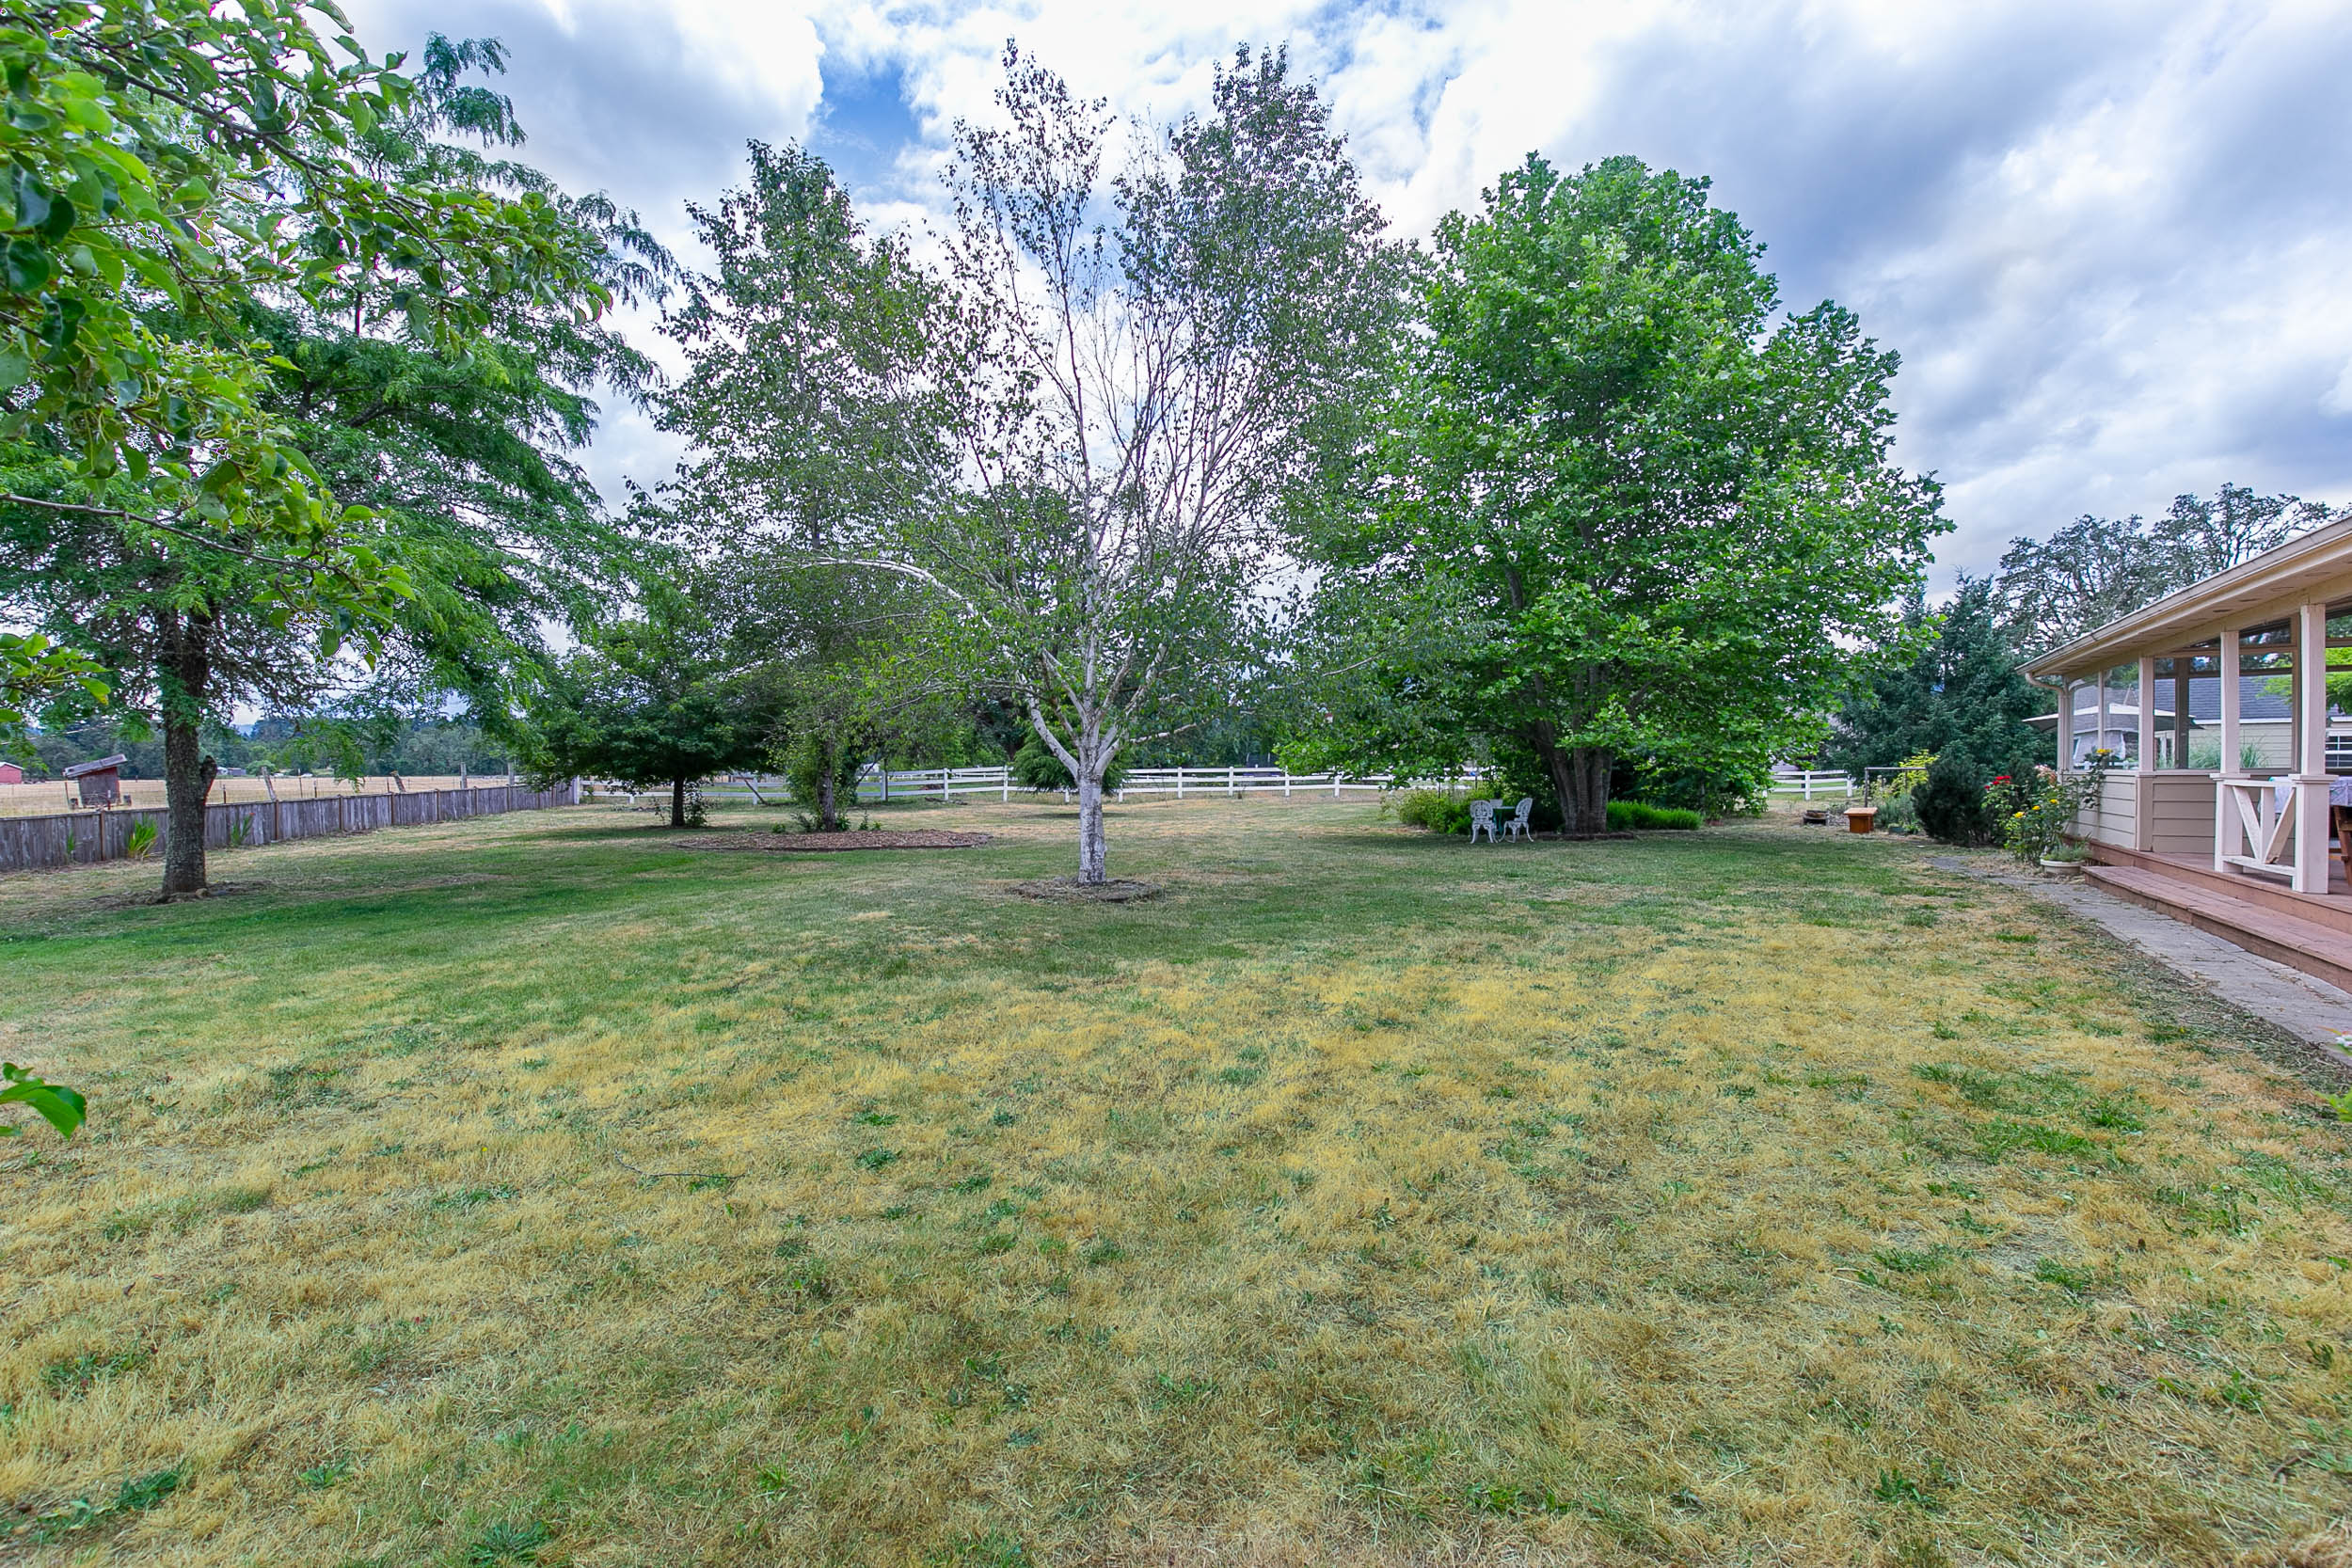 064_78376 Meadow Park Dr_MG_4456-HDR.jpg